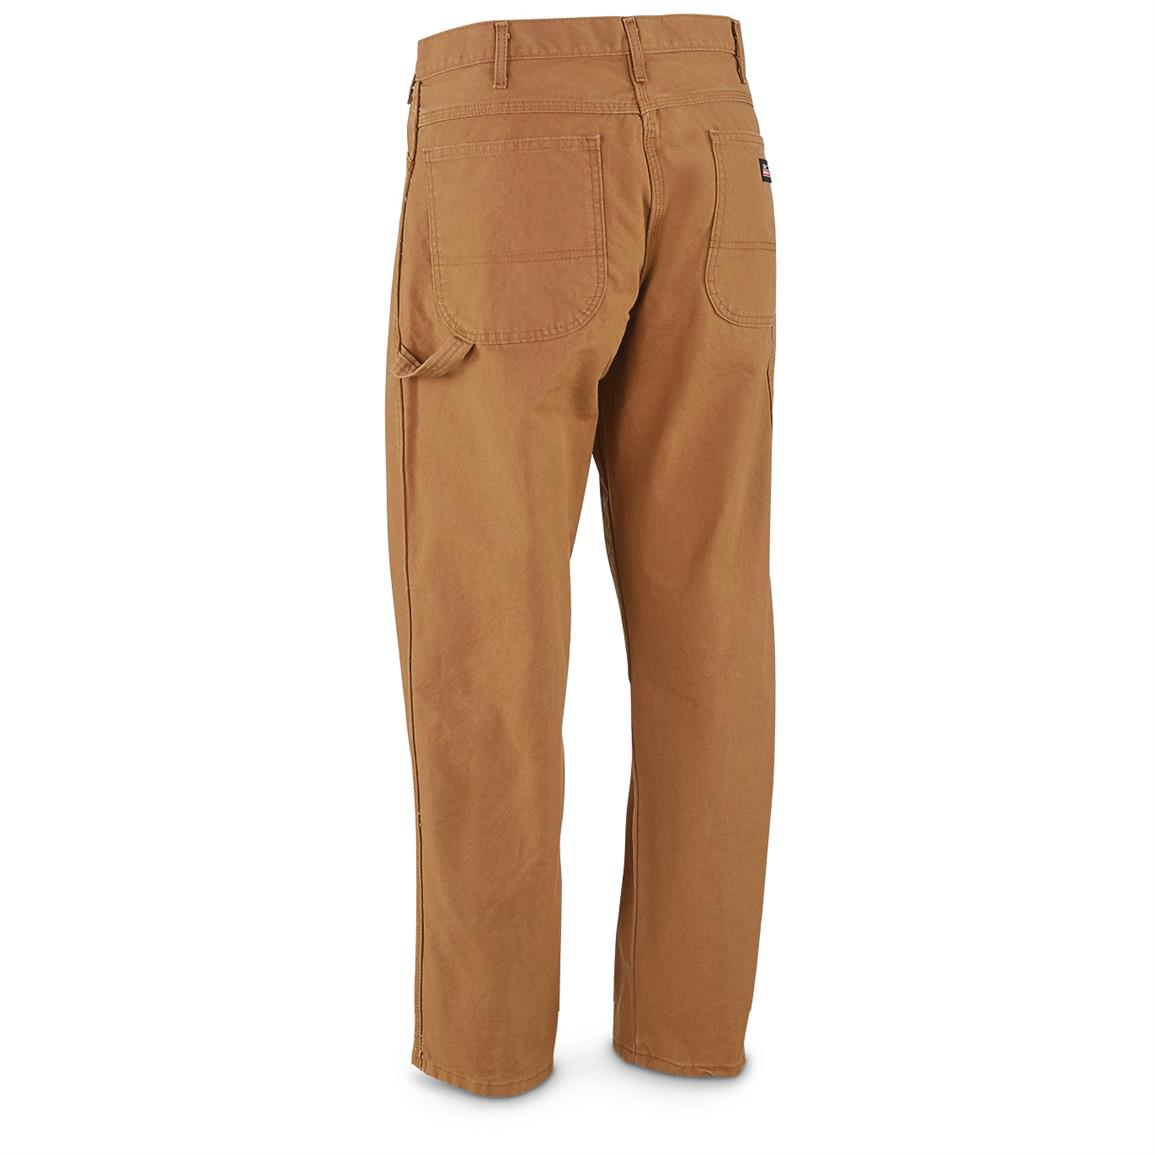 Duck cotton is durable and long-lasting for work